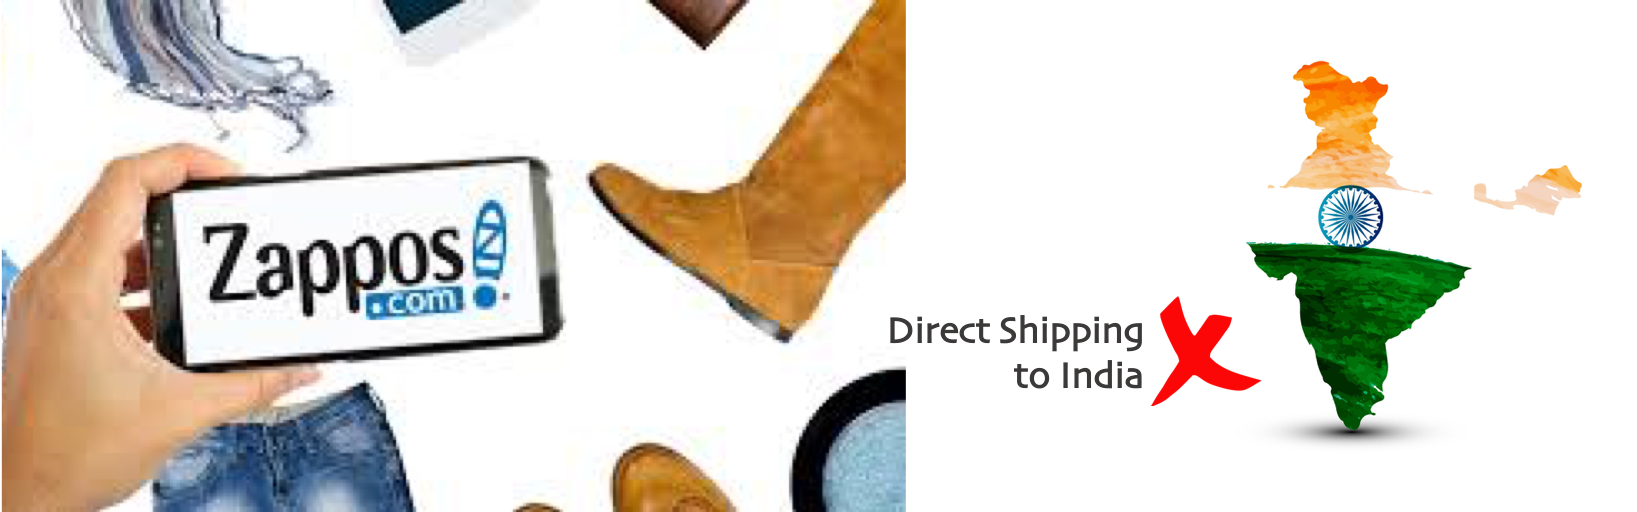 shop Zappos ship to india